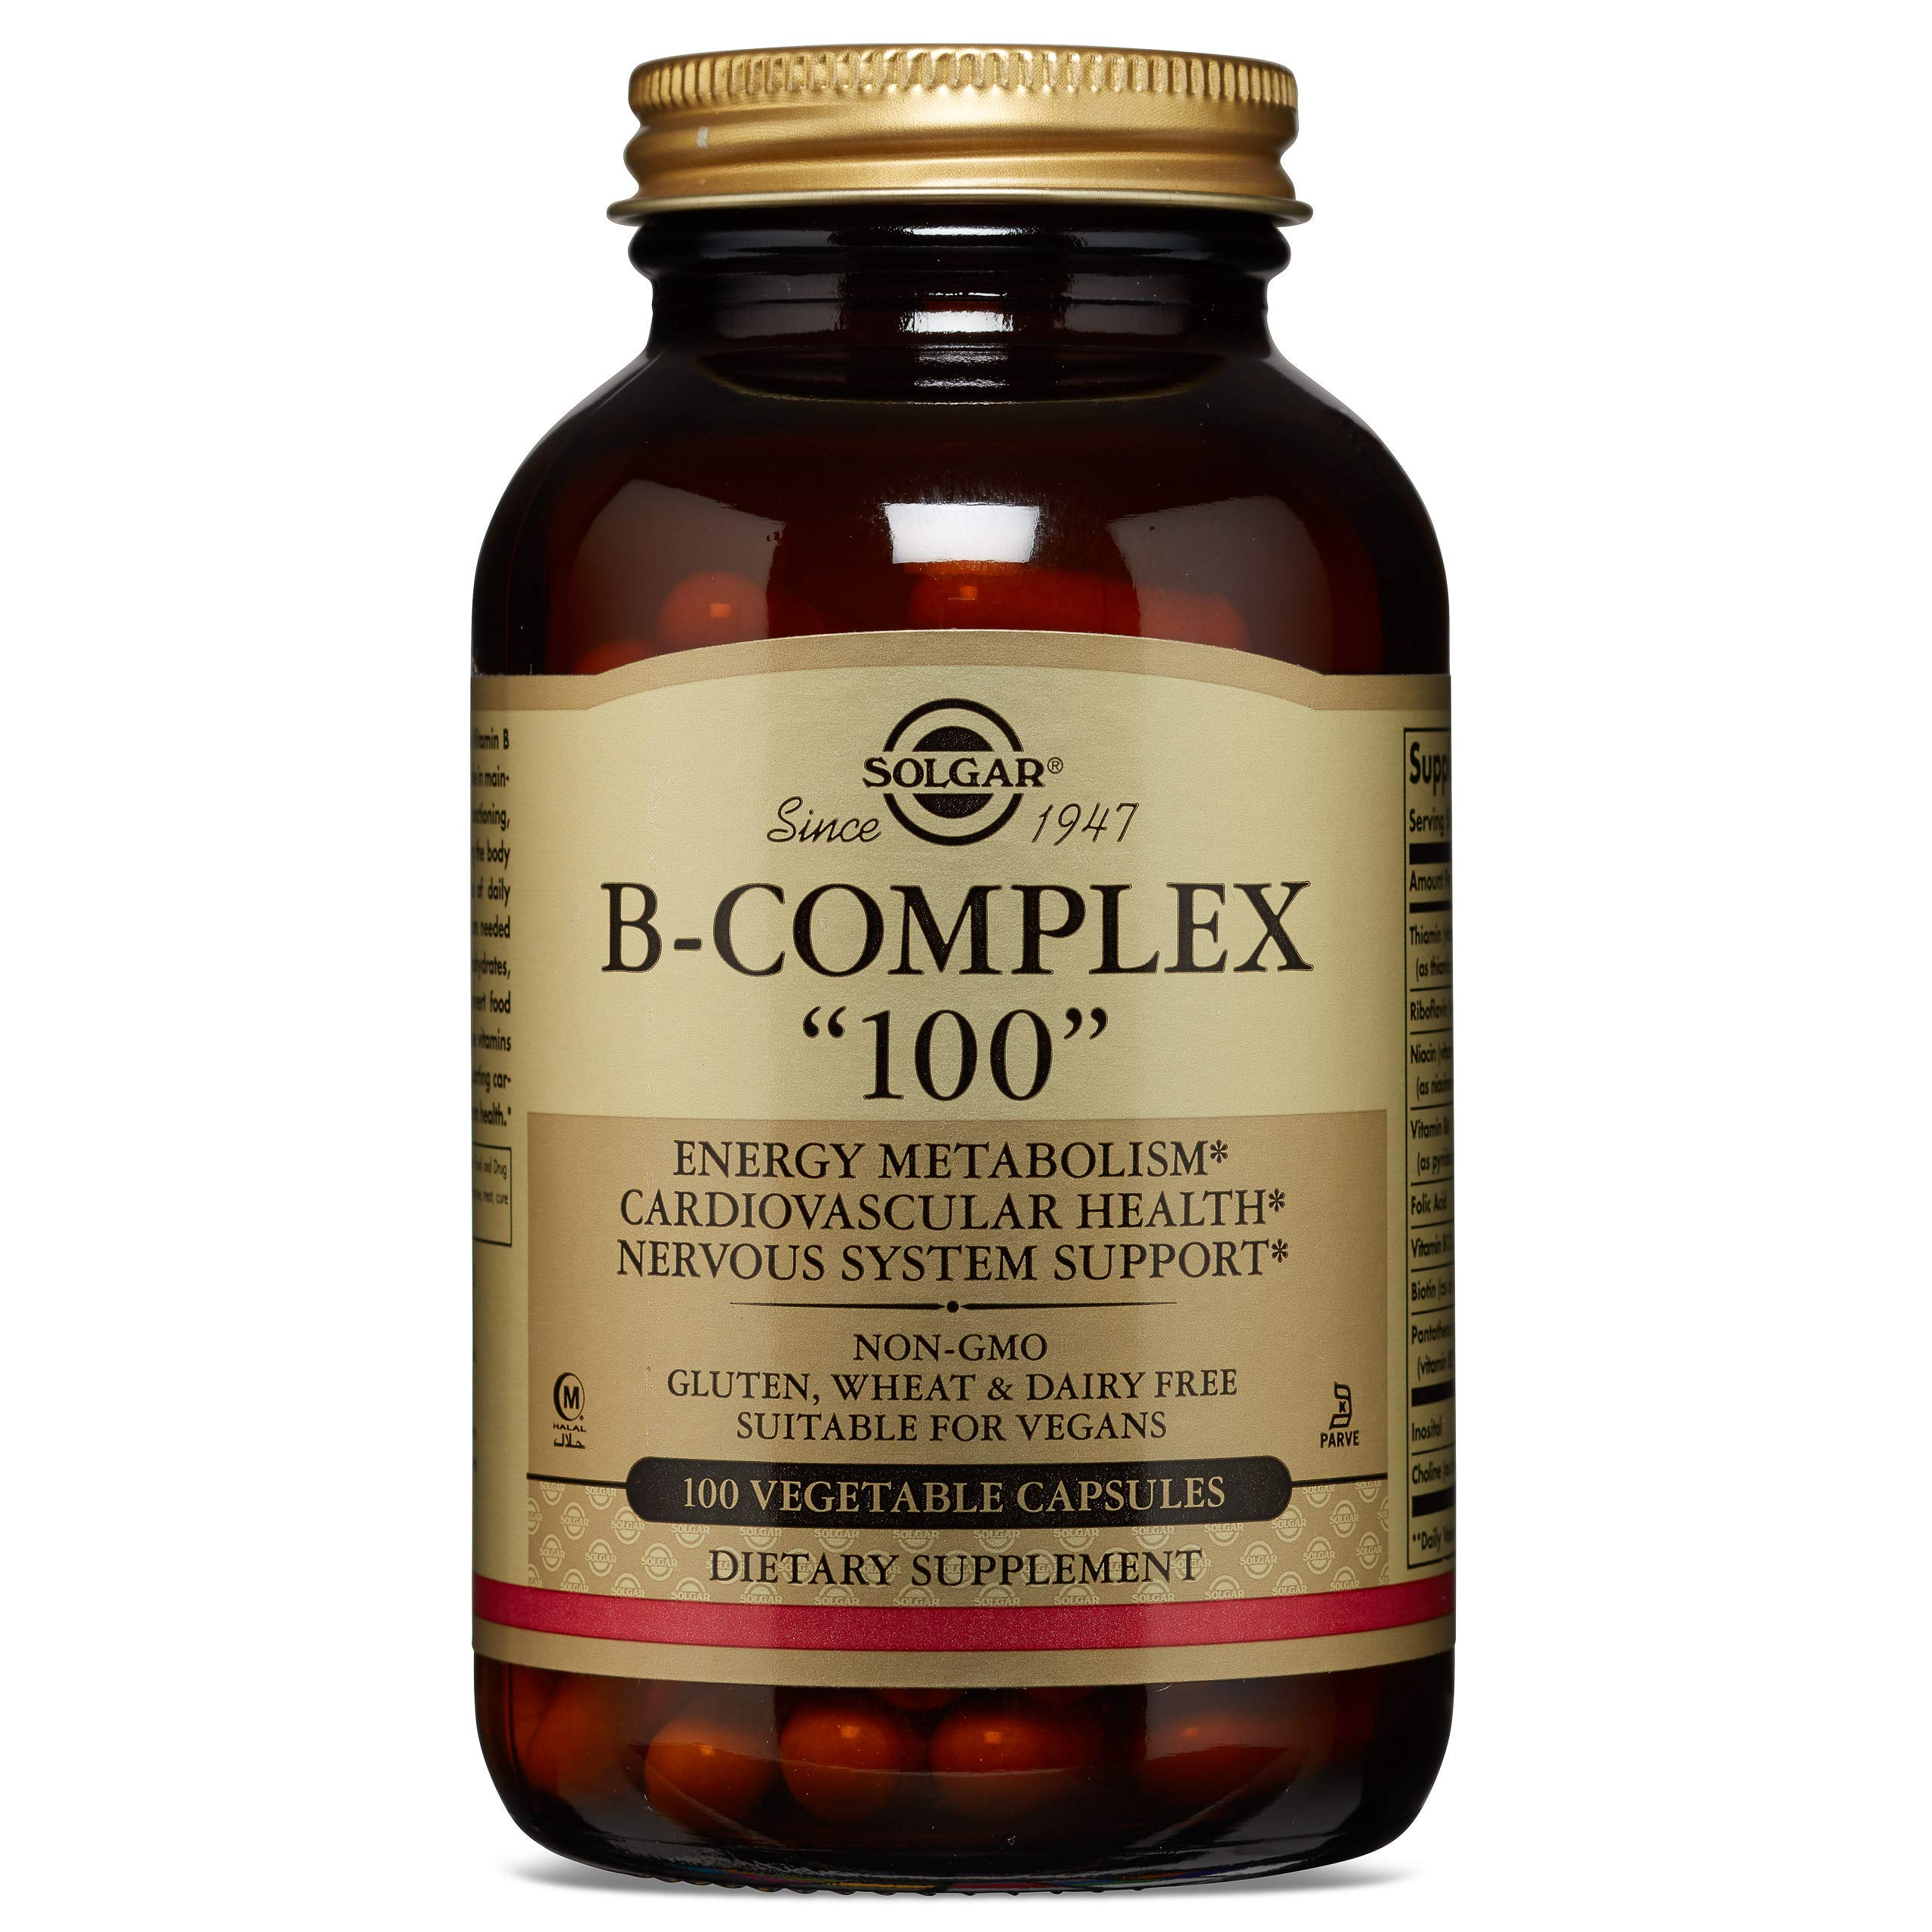 Solgar B-Complex ''100'', Energy Metabolism, Non-GMO, 100 Vegetable Capsules by Solgar